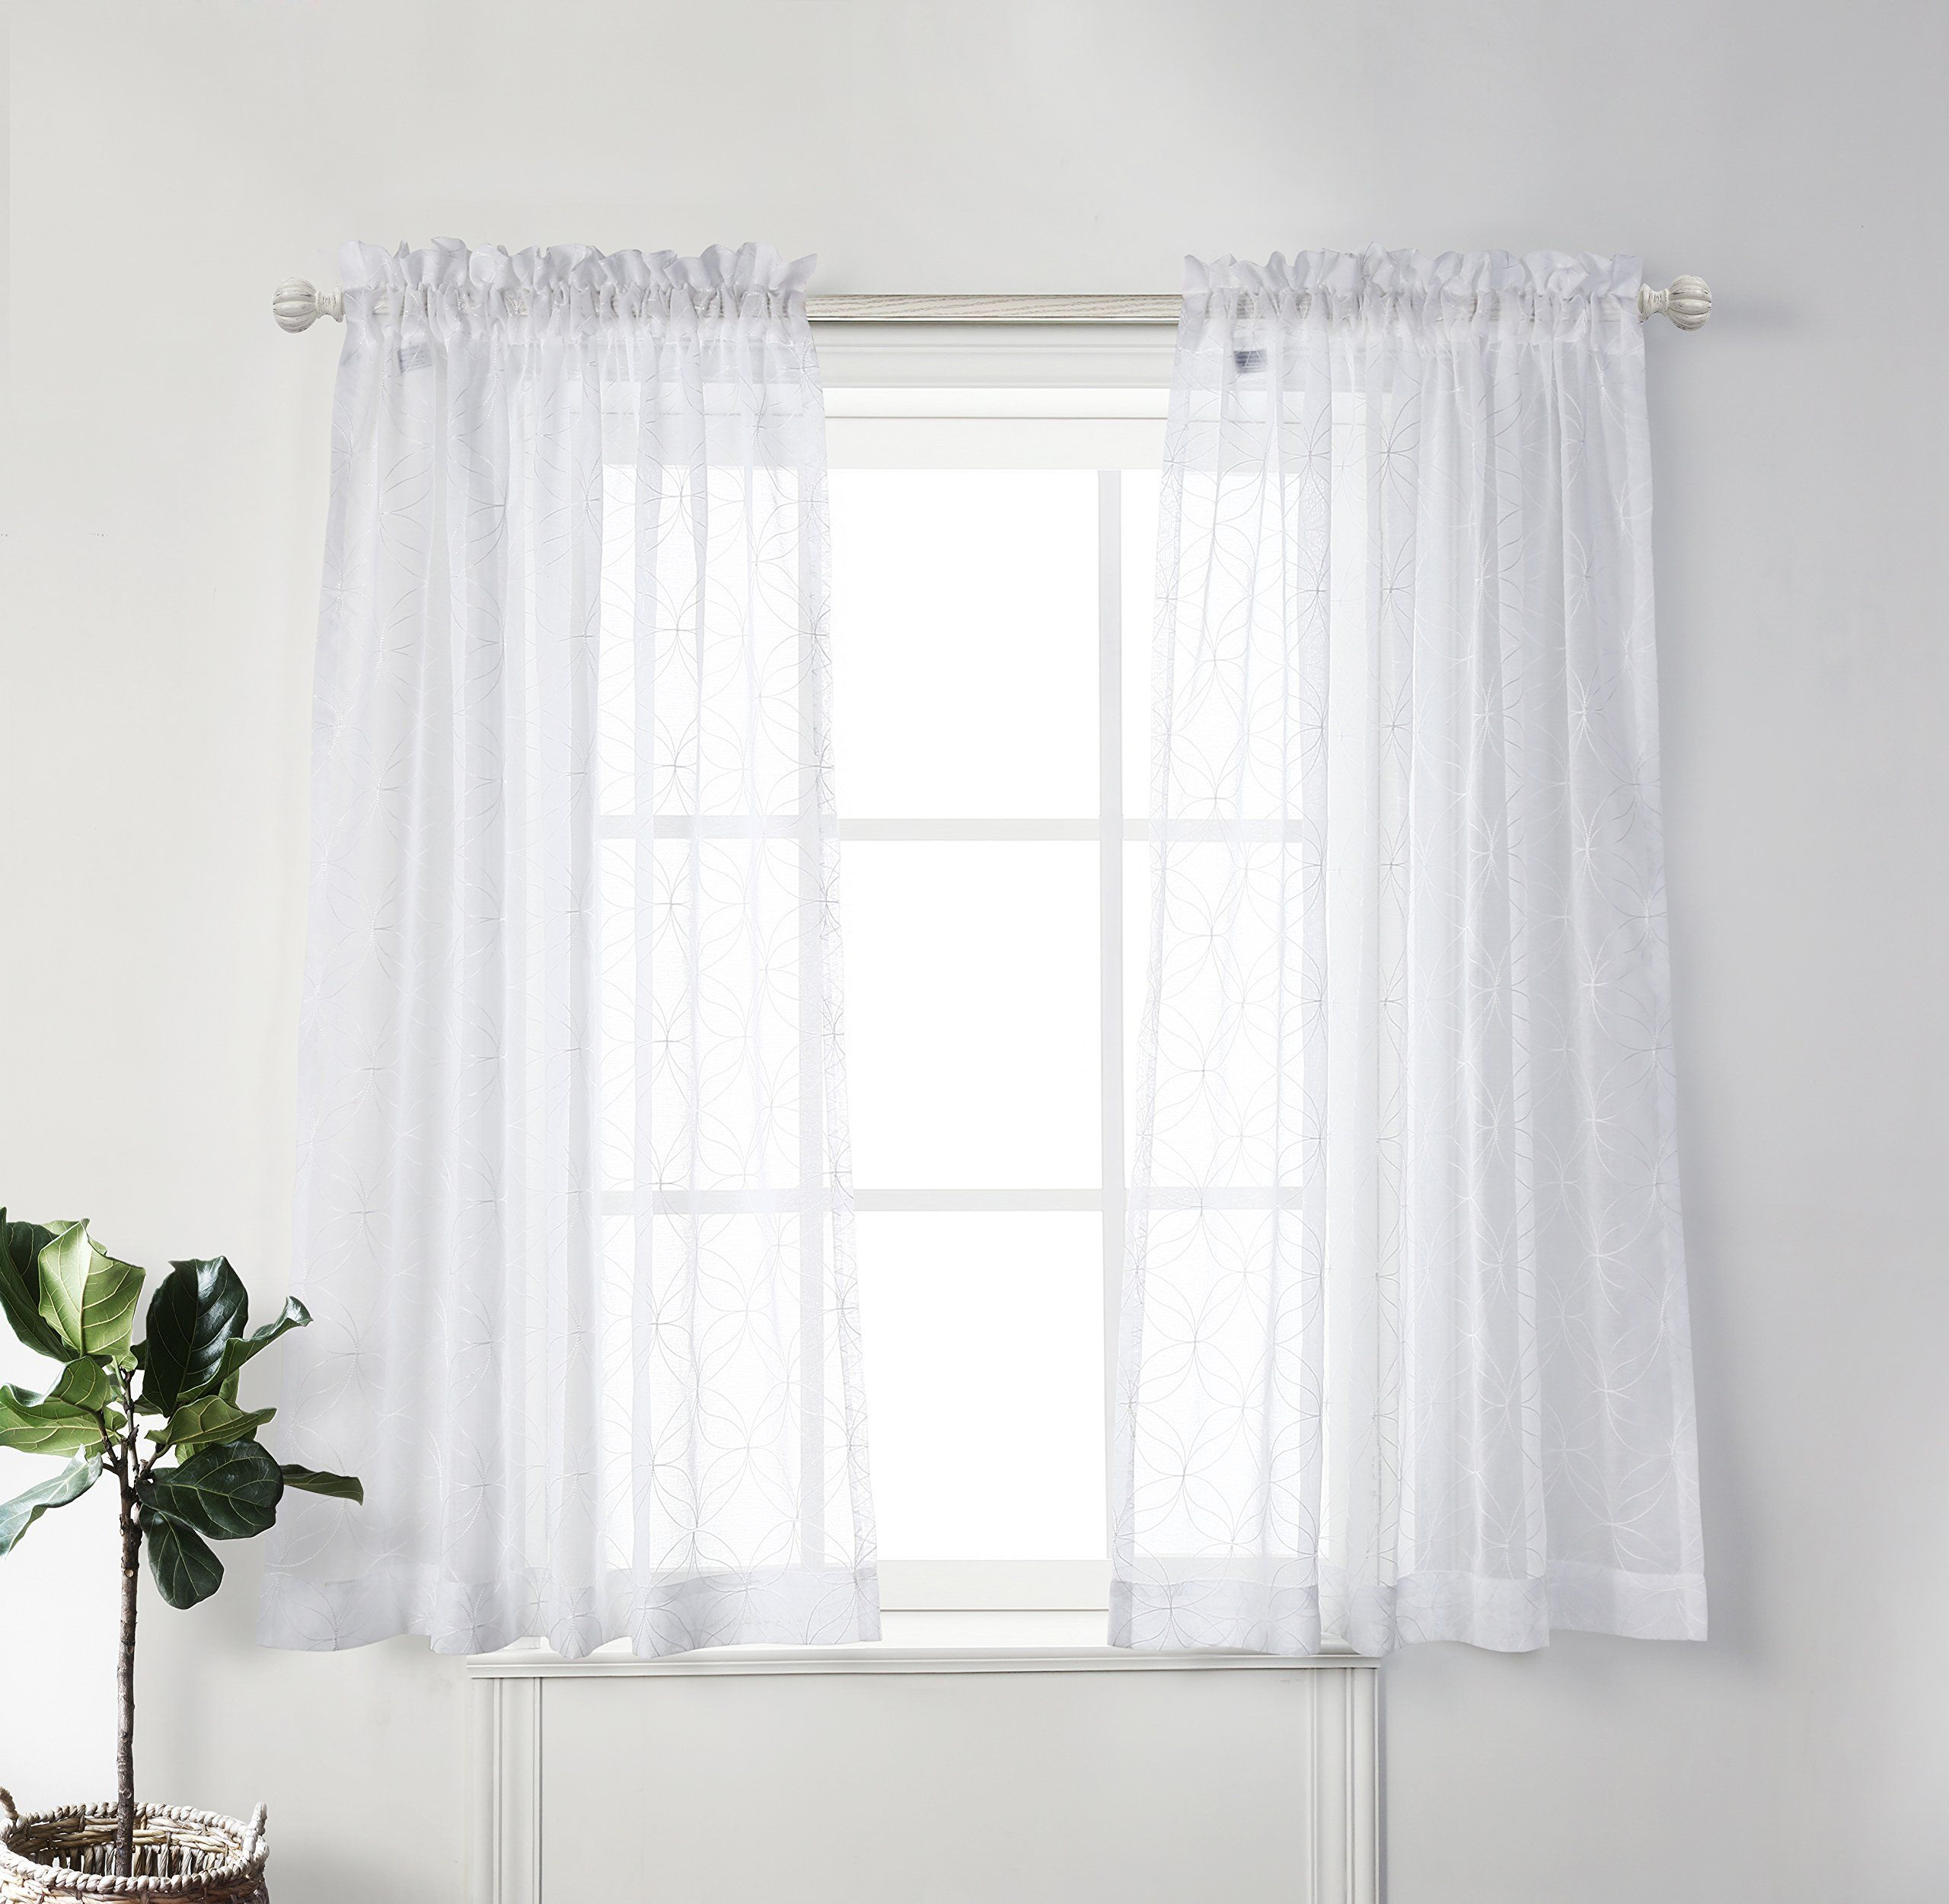 Mysky home sheer curtains for living room by embroidered white short sheers curtain for bedroom white 52 inch width by 63 inch length